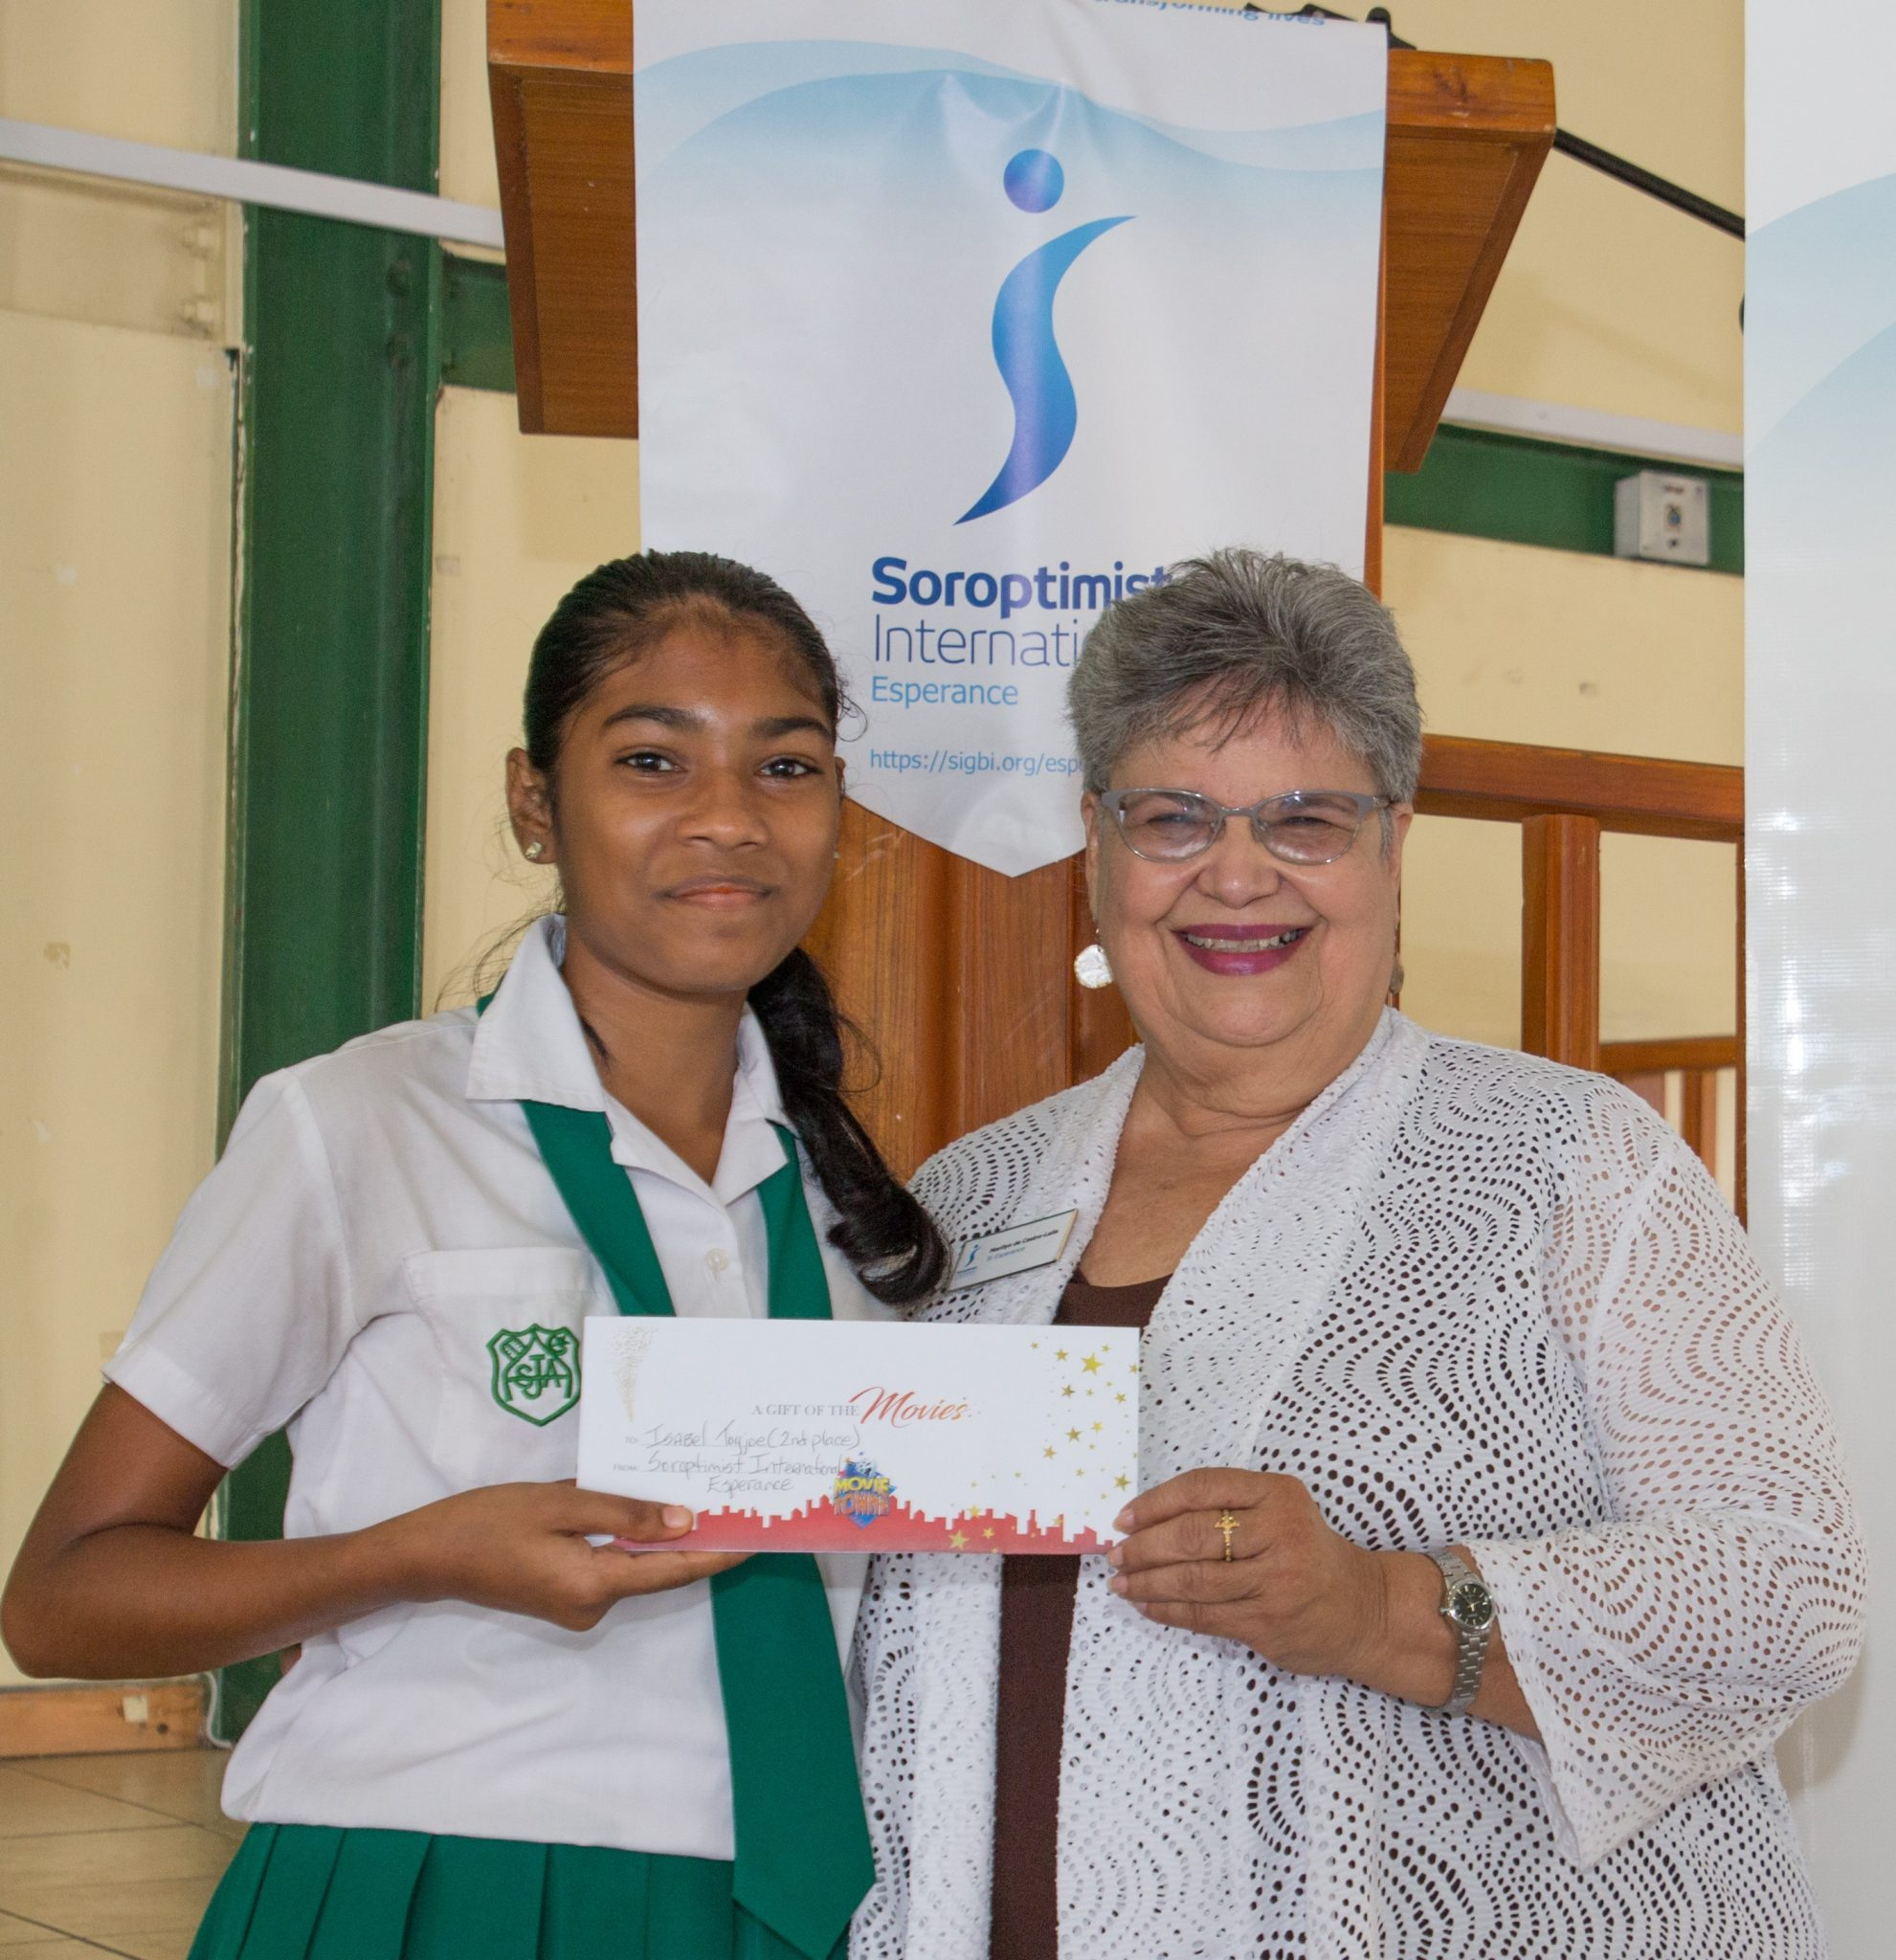 Communications Officer Marilyn Lalla presents the prize to 1st place winner Ivory Reid.